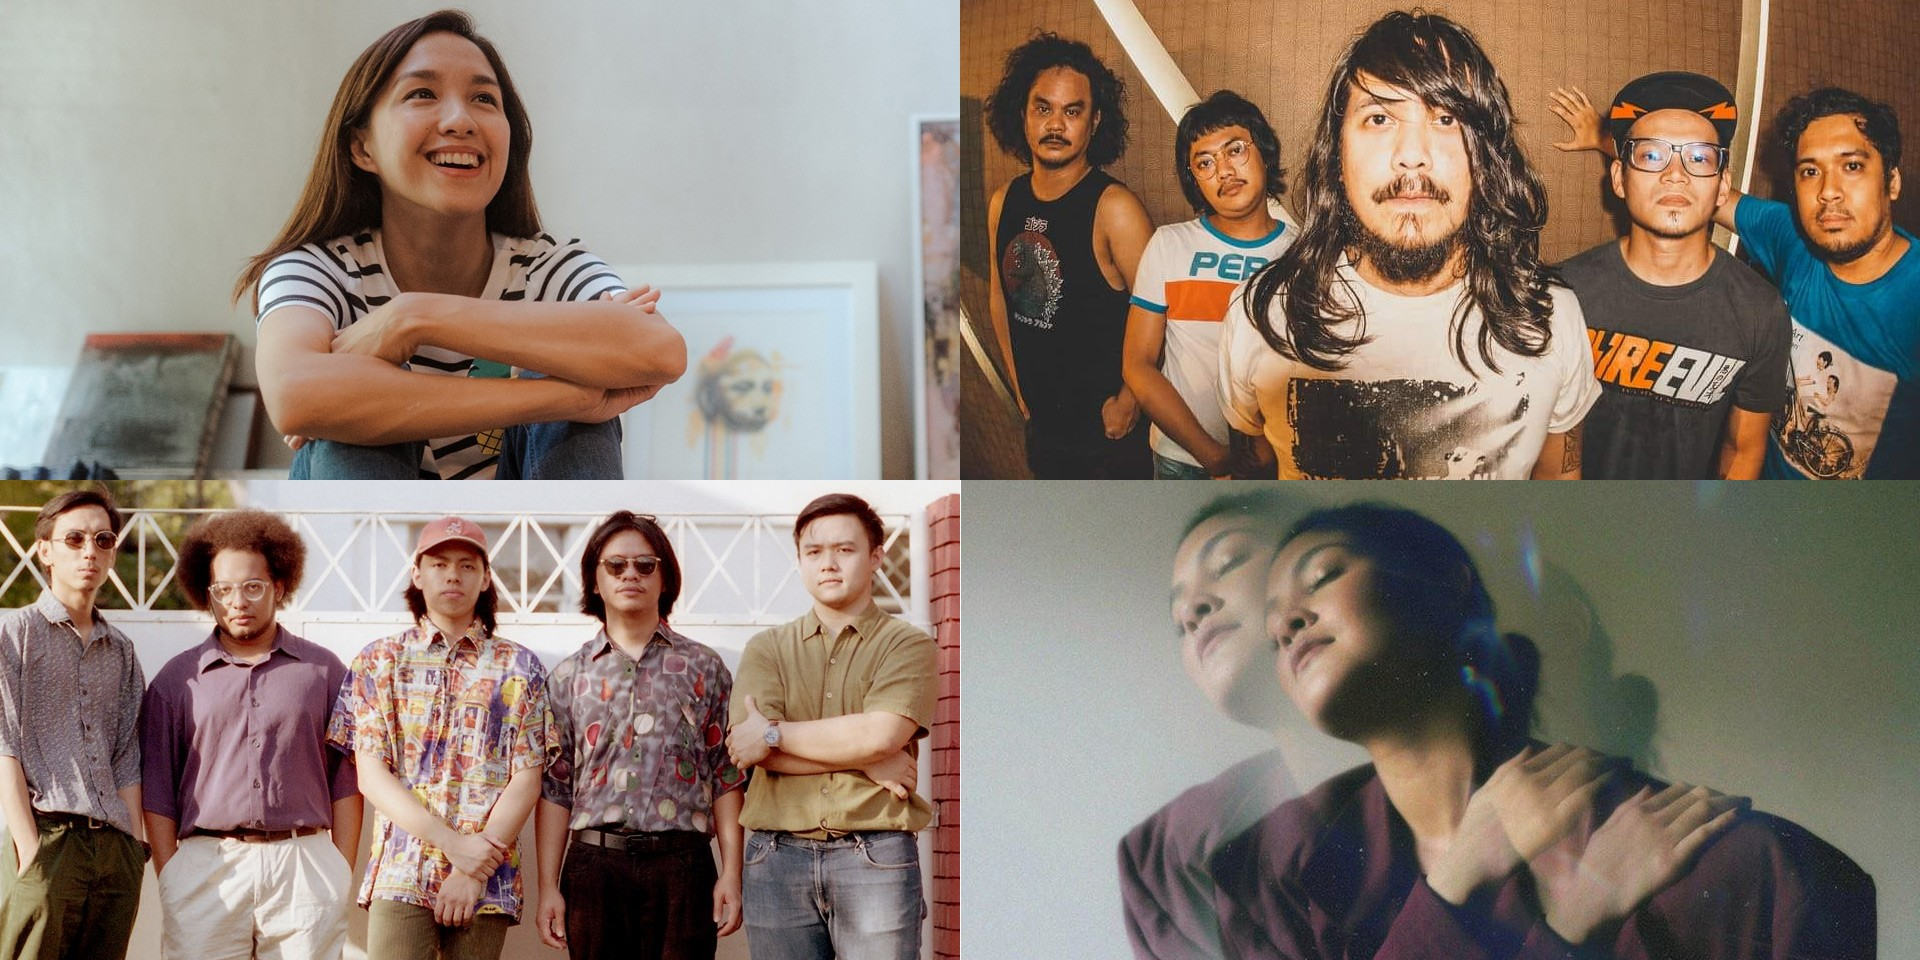 Barbie Almalbis, Kiana Valenciano, Flu, RIOT, and more cap off January with new music – listen